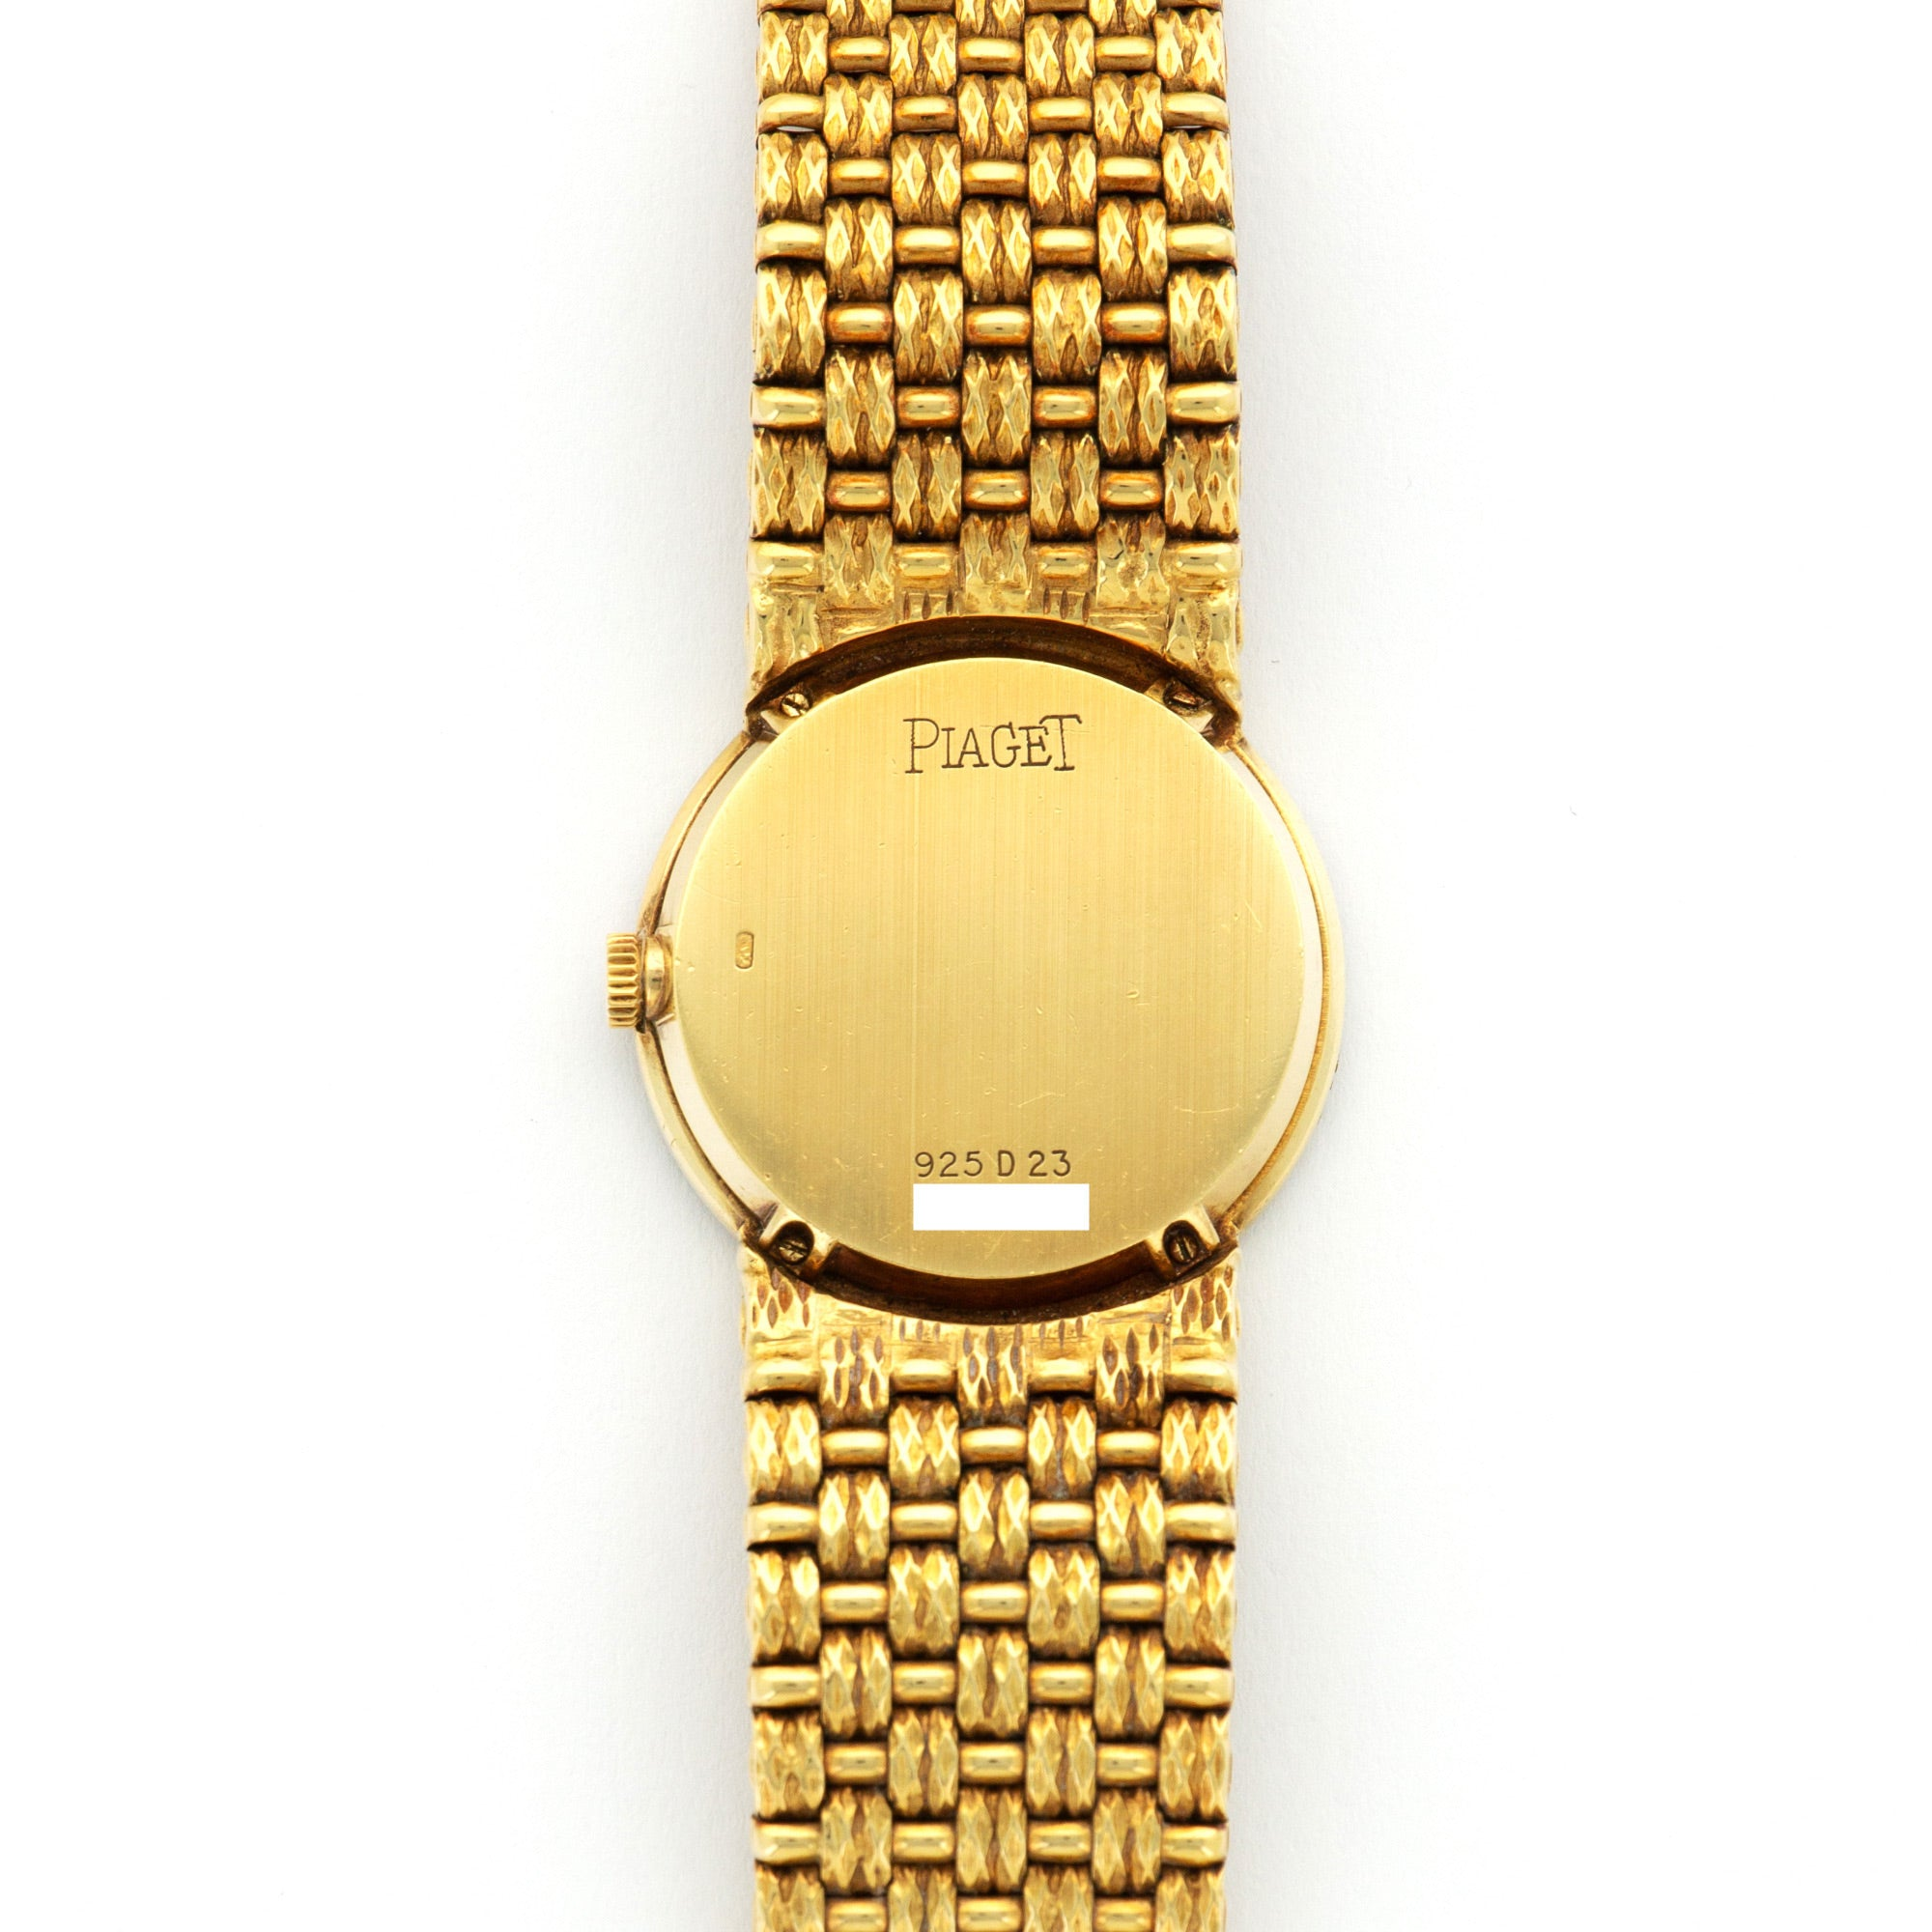 Piaget Vintage 925 18k YG  Excellent Ladies 18k YG Pave Diamond 25mm Manual 1970s Yellow Gold Bracelet (165mm) Leather Travel Case